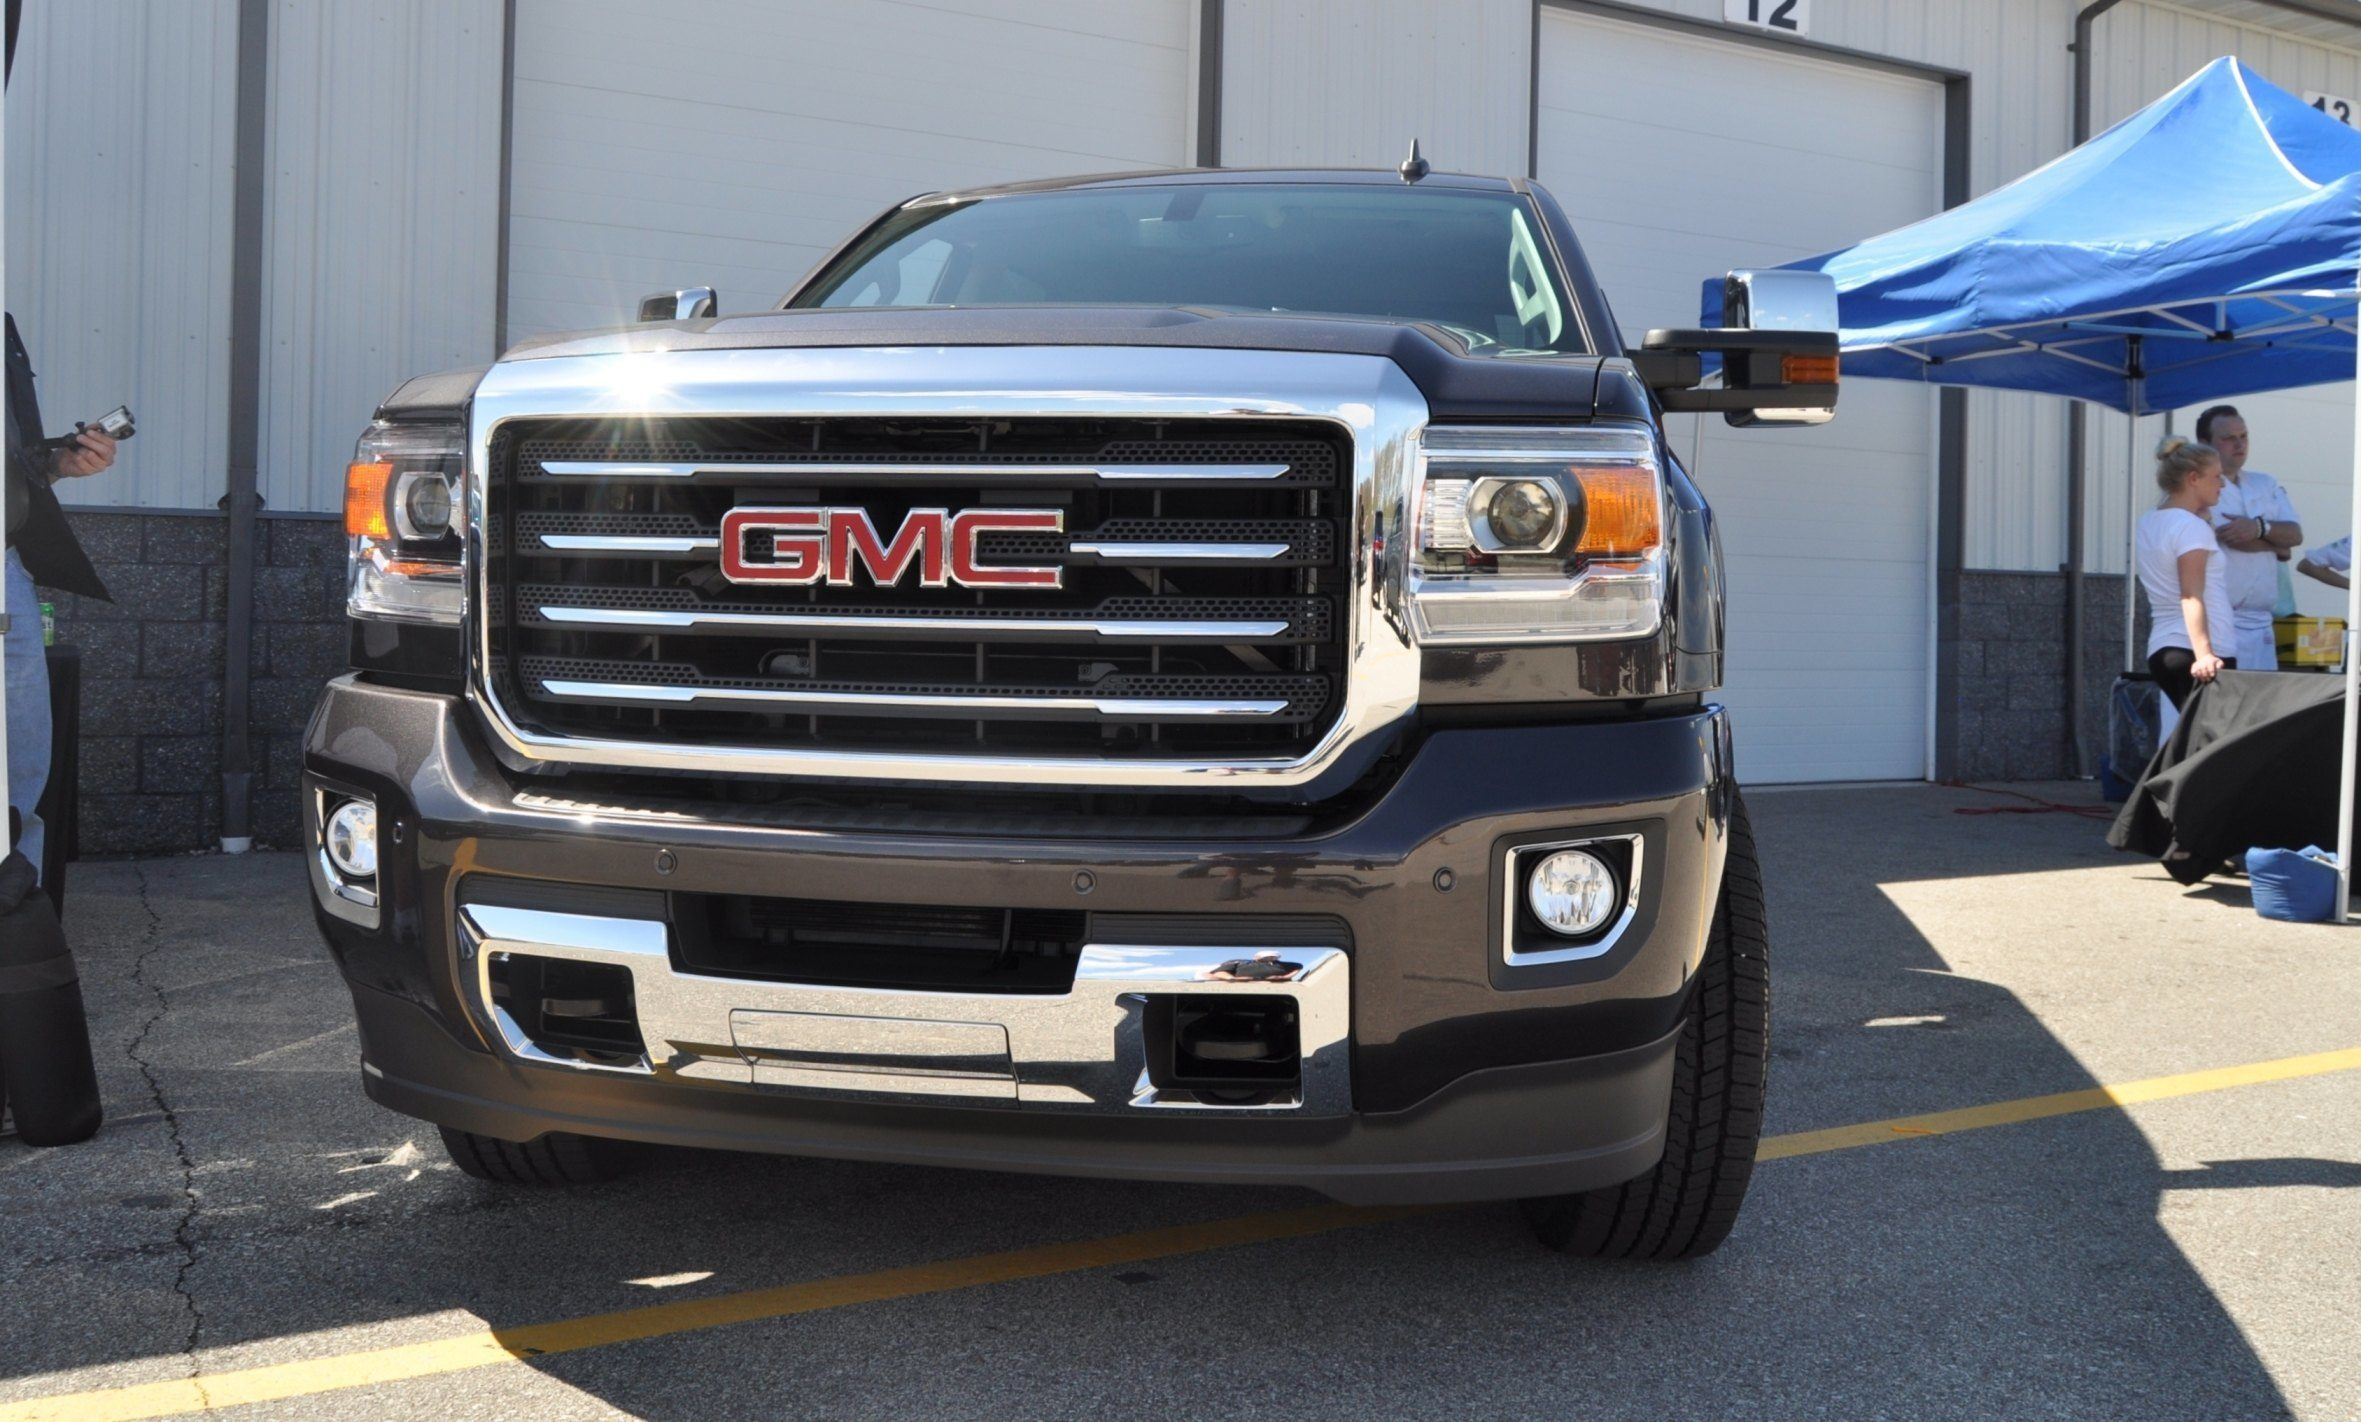 2015 gmc sierra all terrain hd real life launch photos of the king kong 2015 hd truck. Black Bedroom Furniture Sets. Home Design Ideas